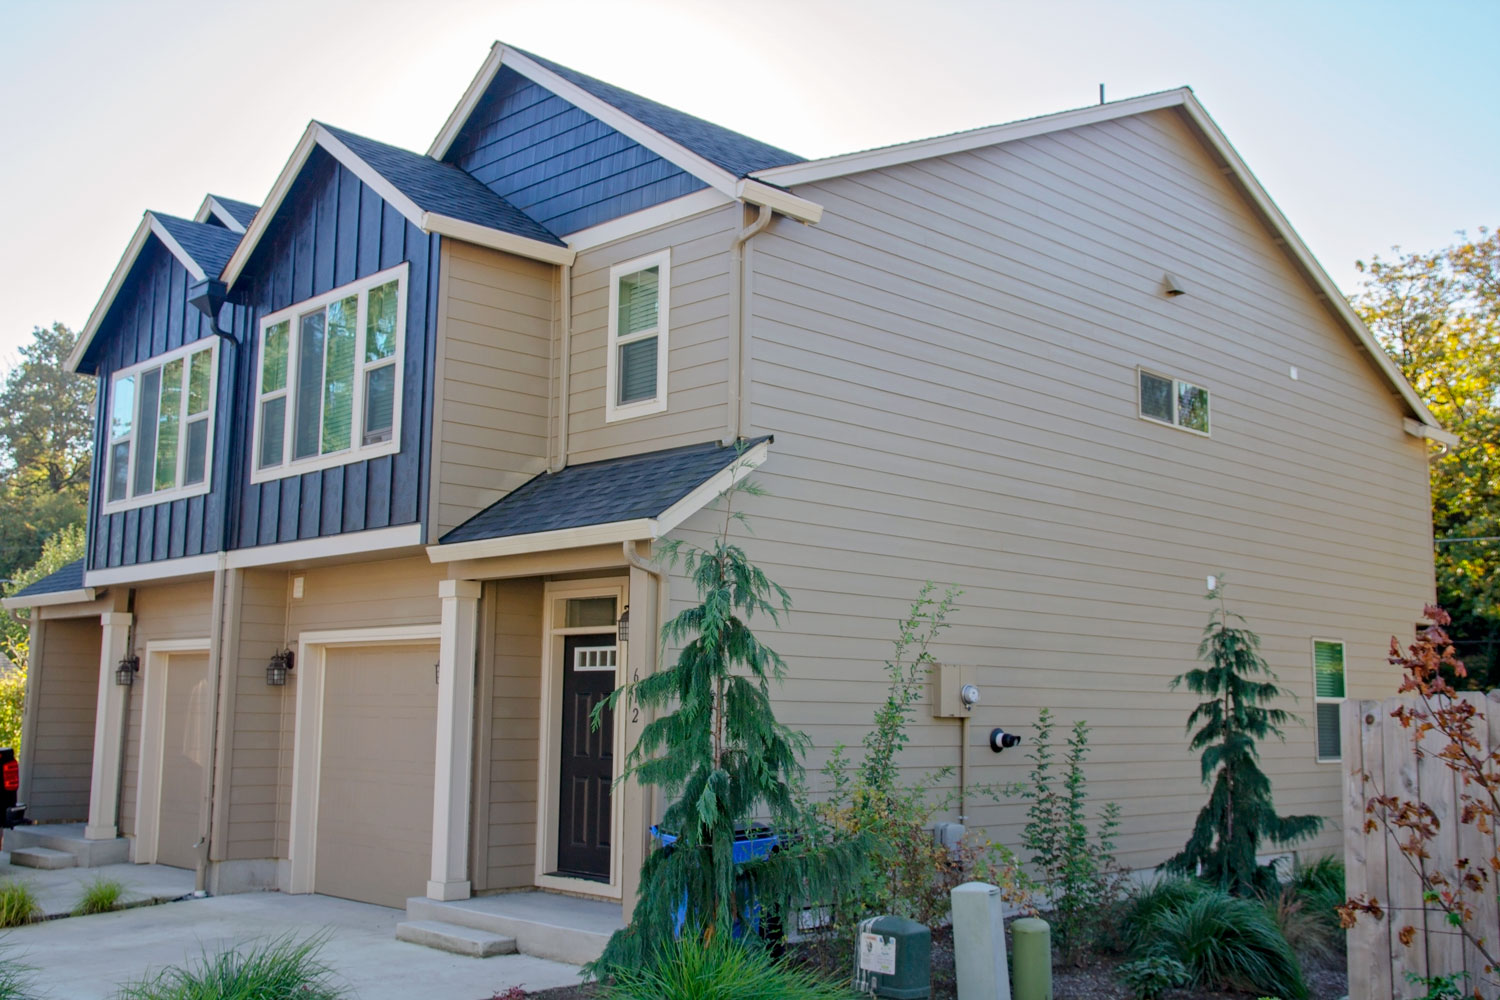 7th Avenue Townhomes (10)